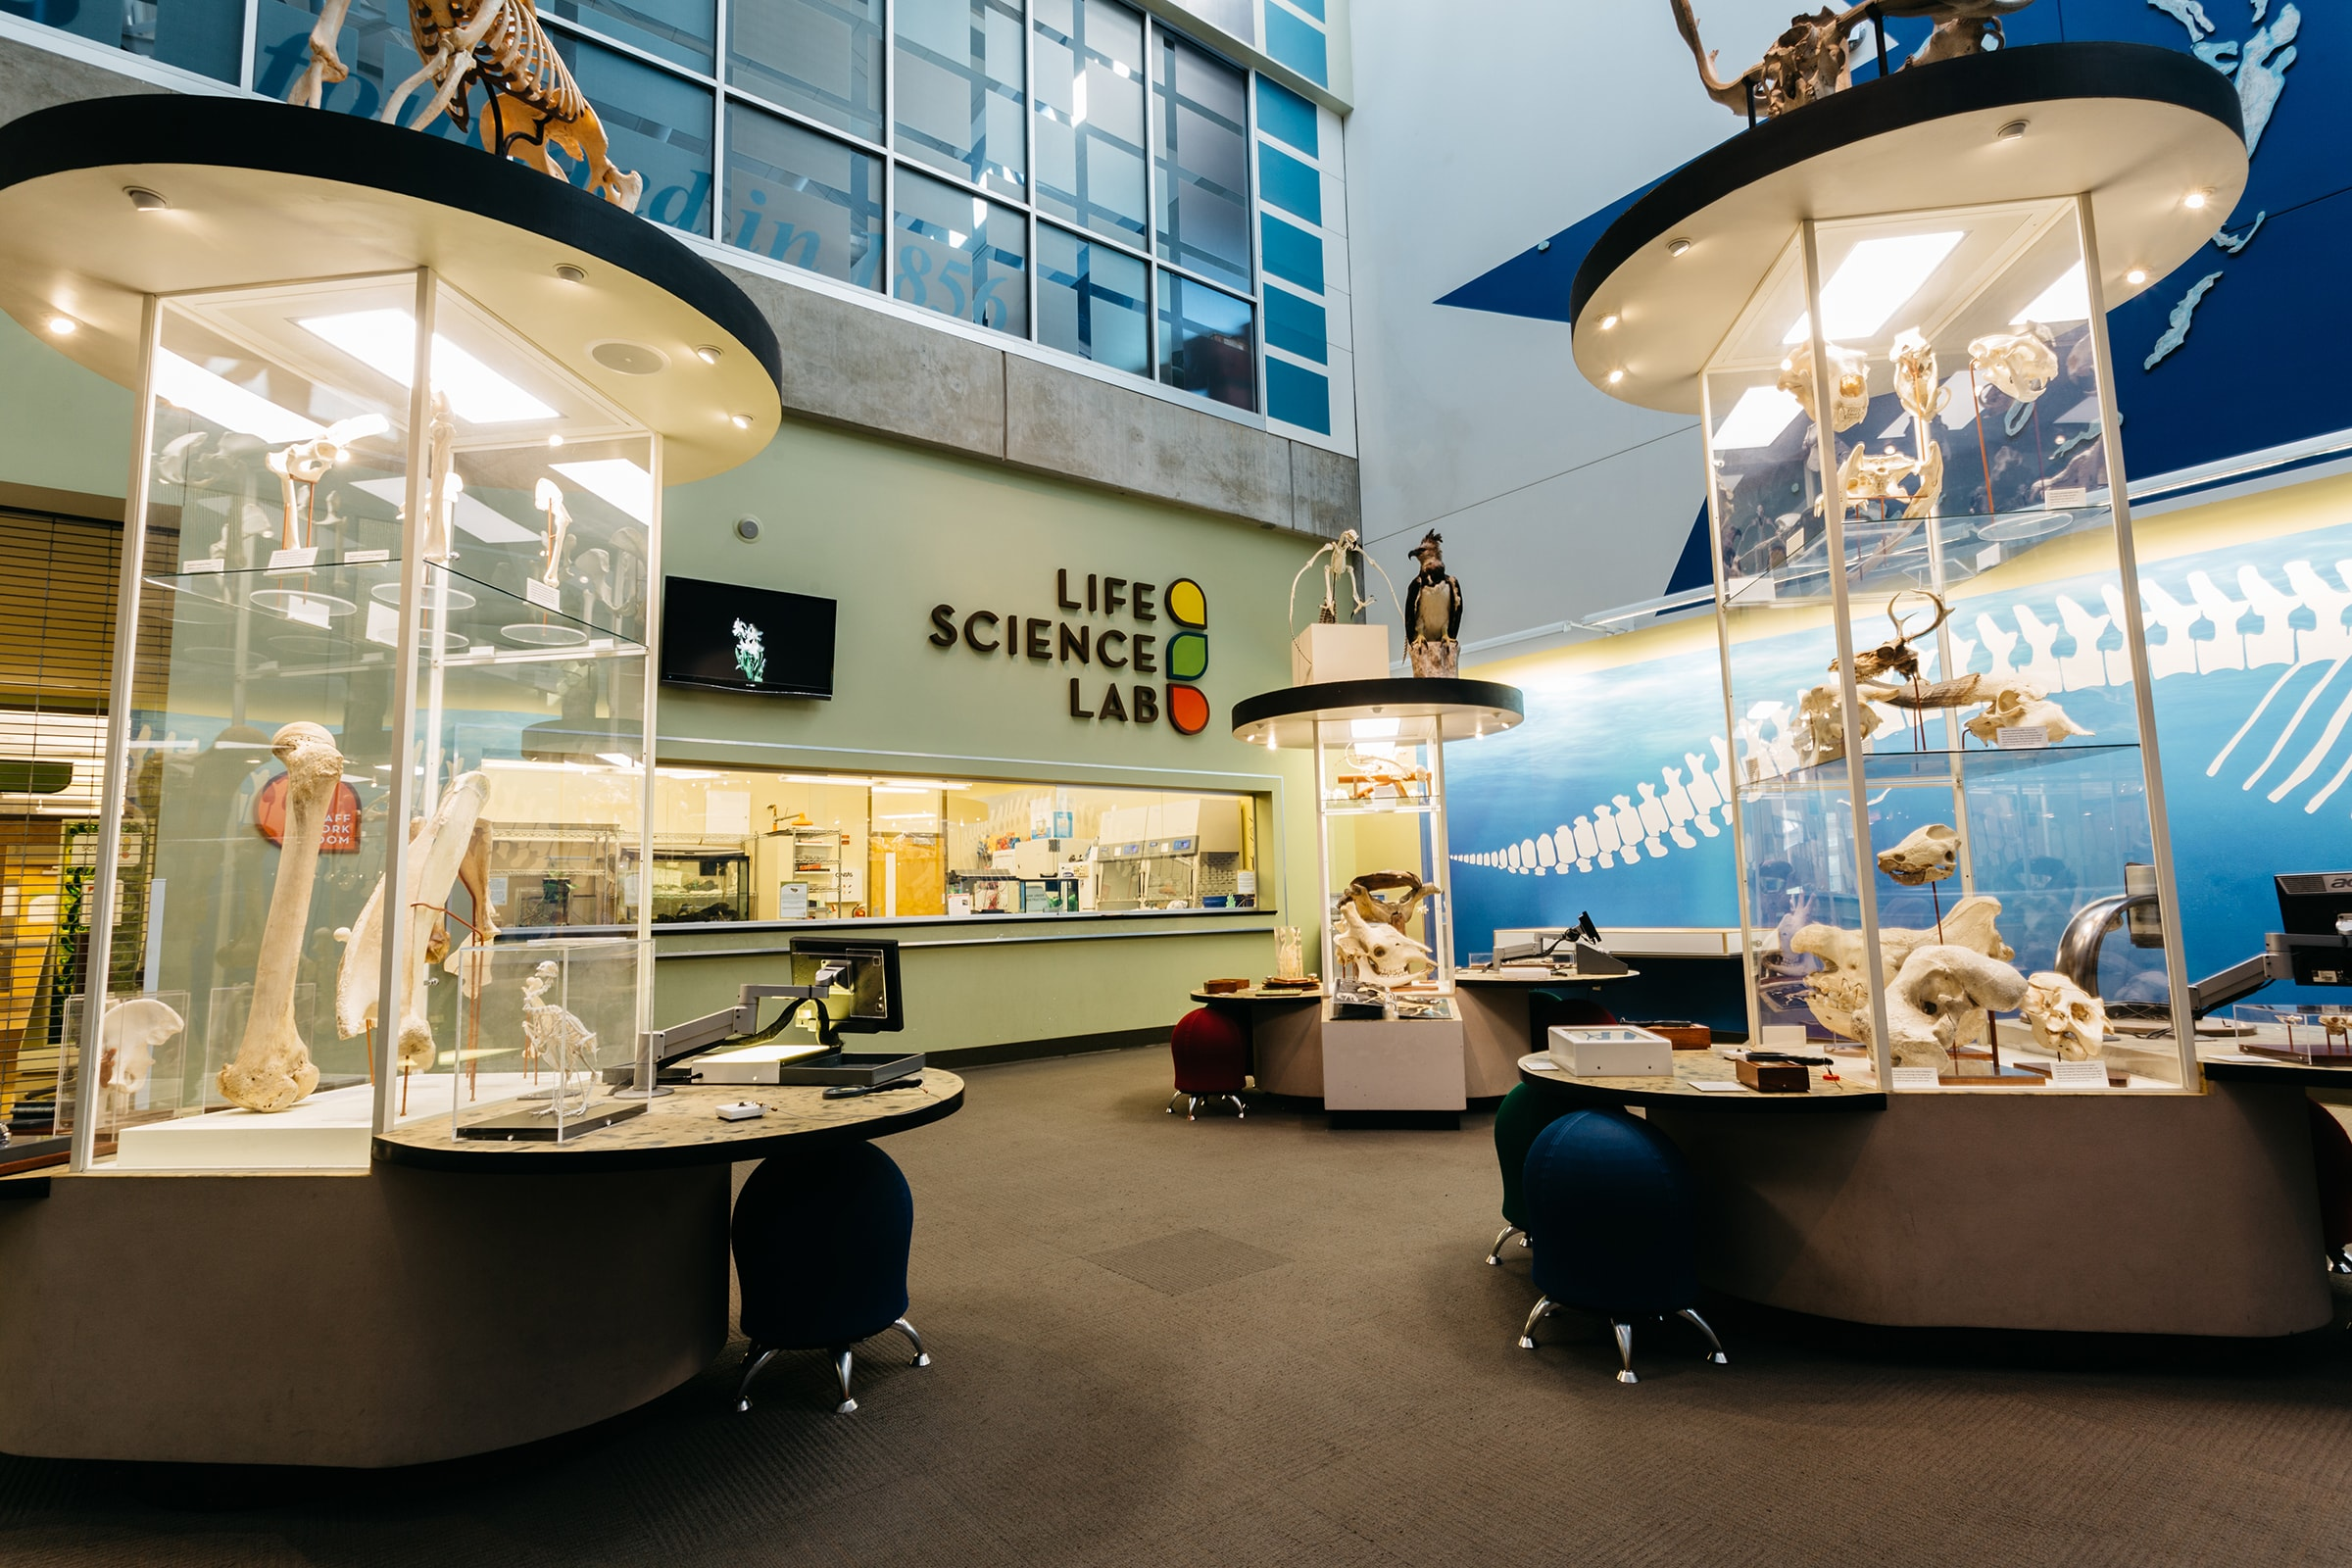 Life Science Exhibit